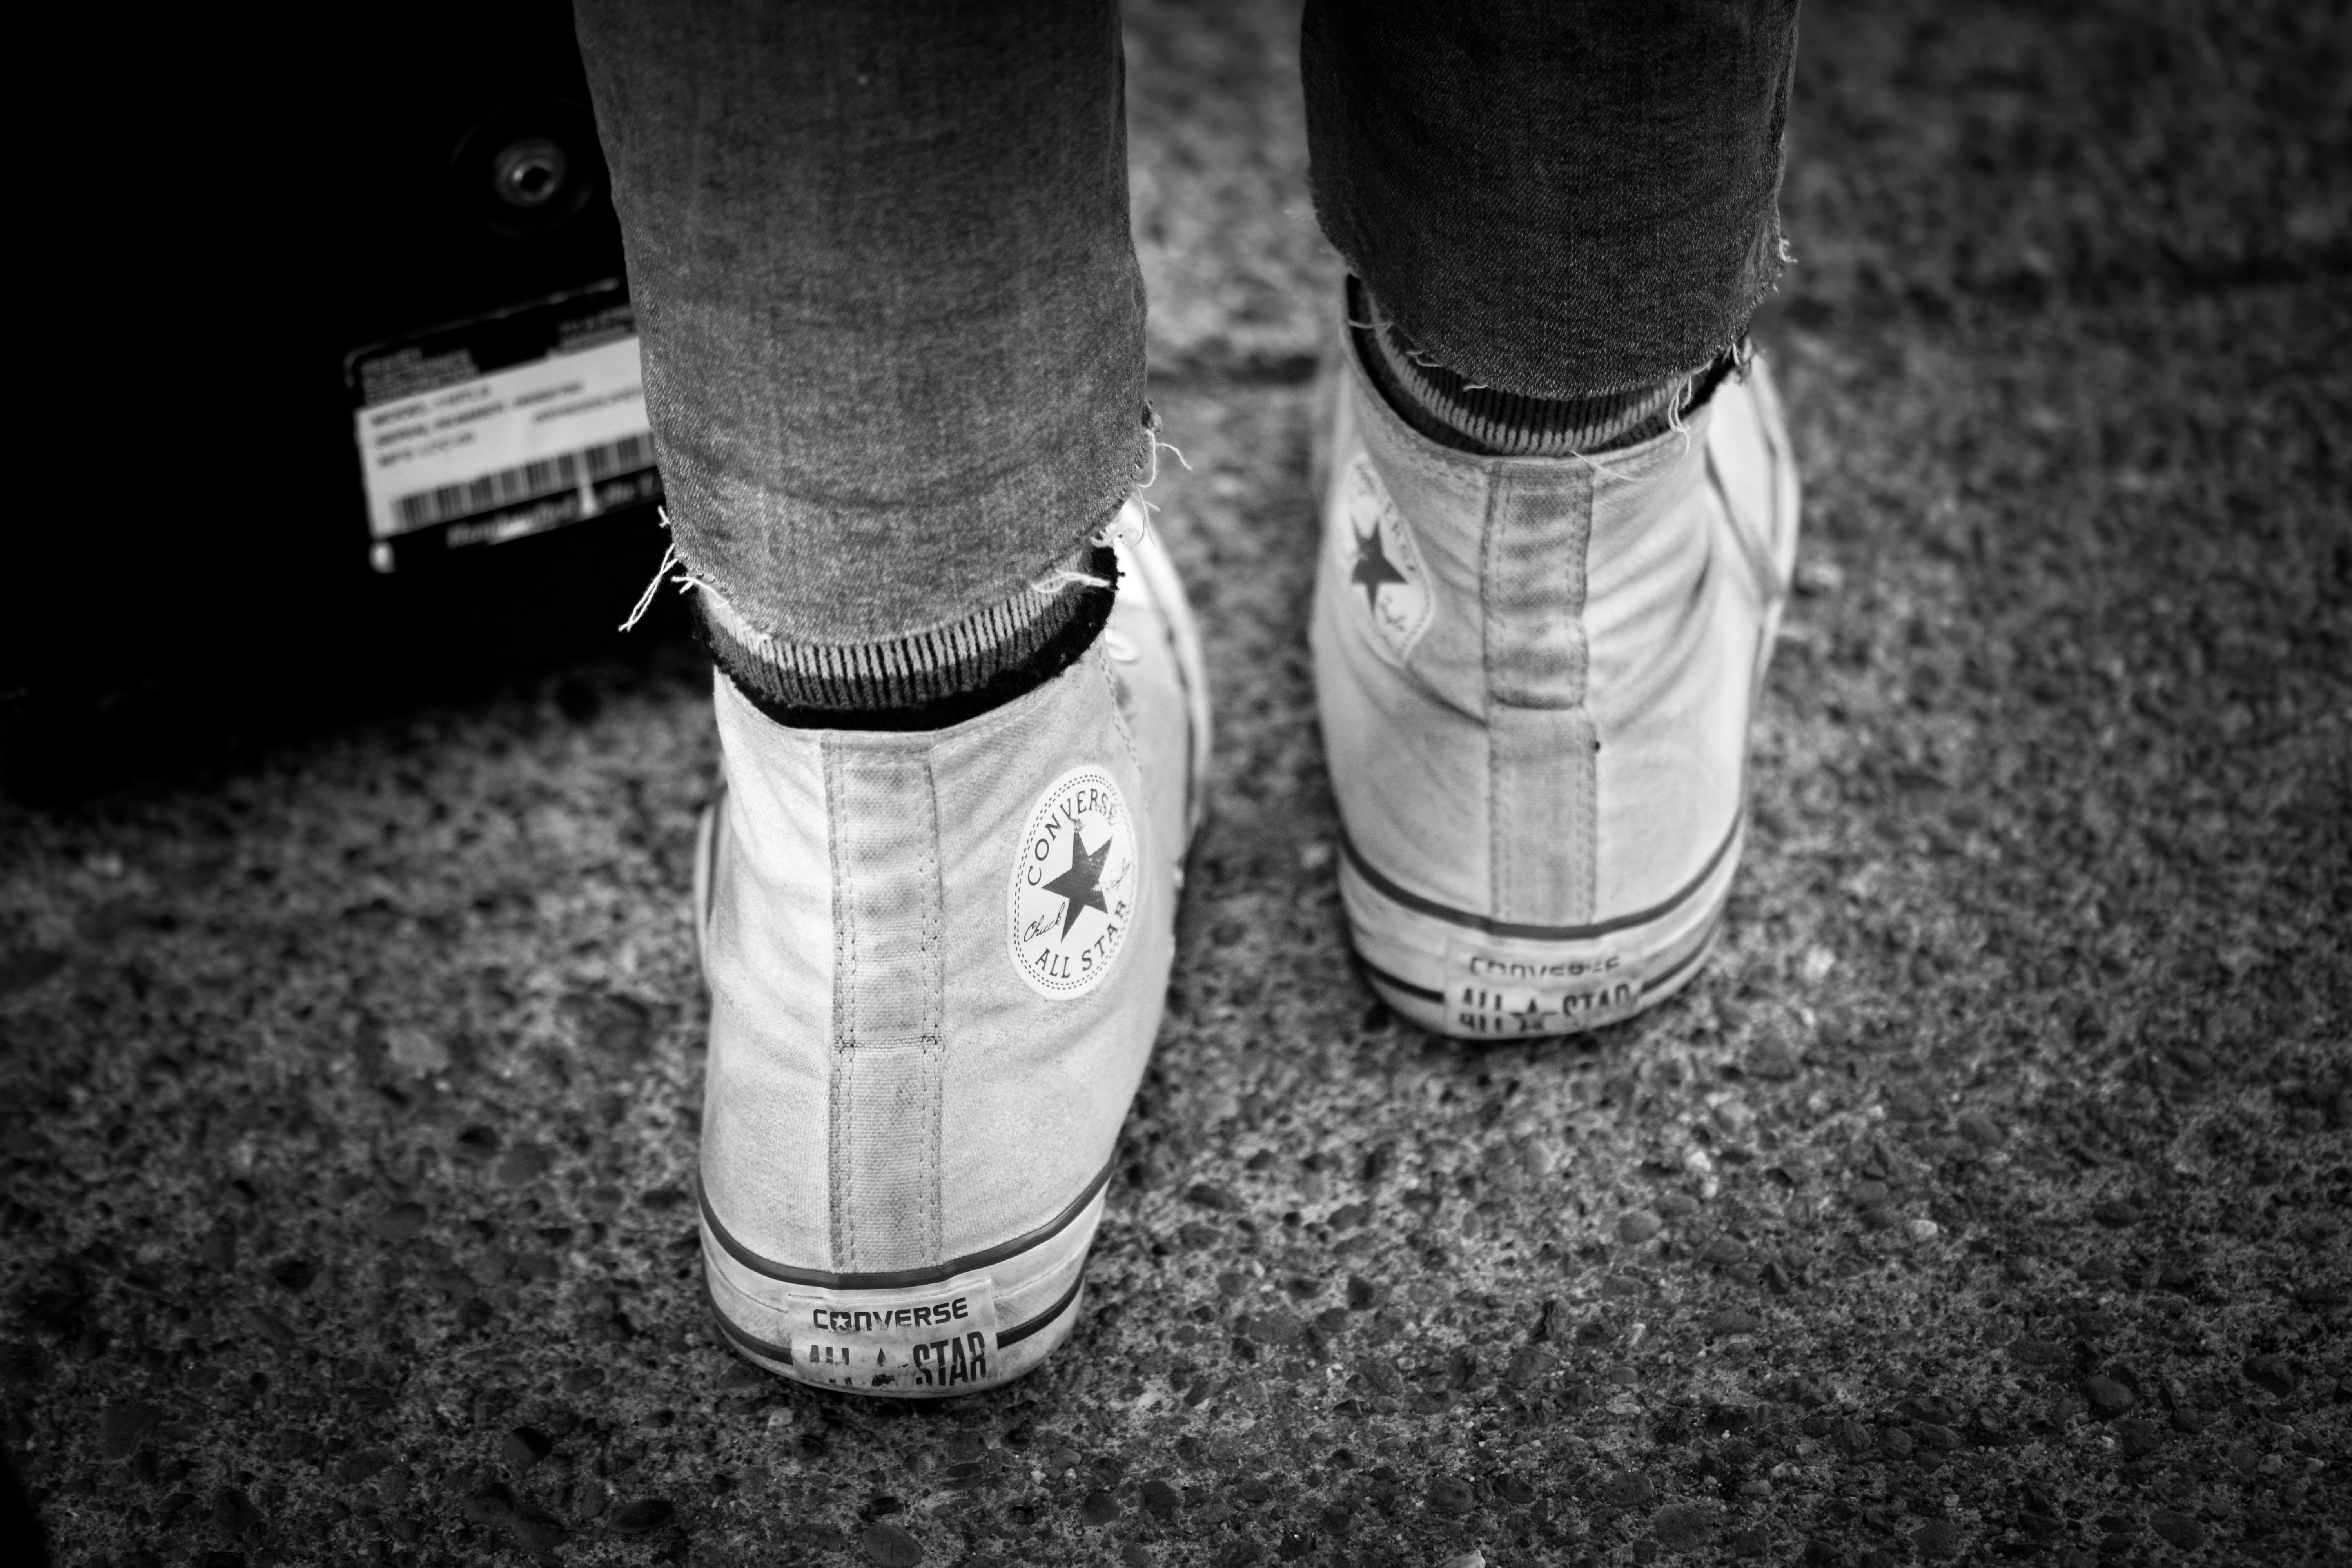 grayscale photography of person wearing Converse All-Star high-top sneakers